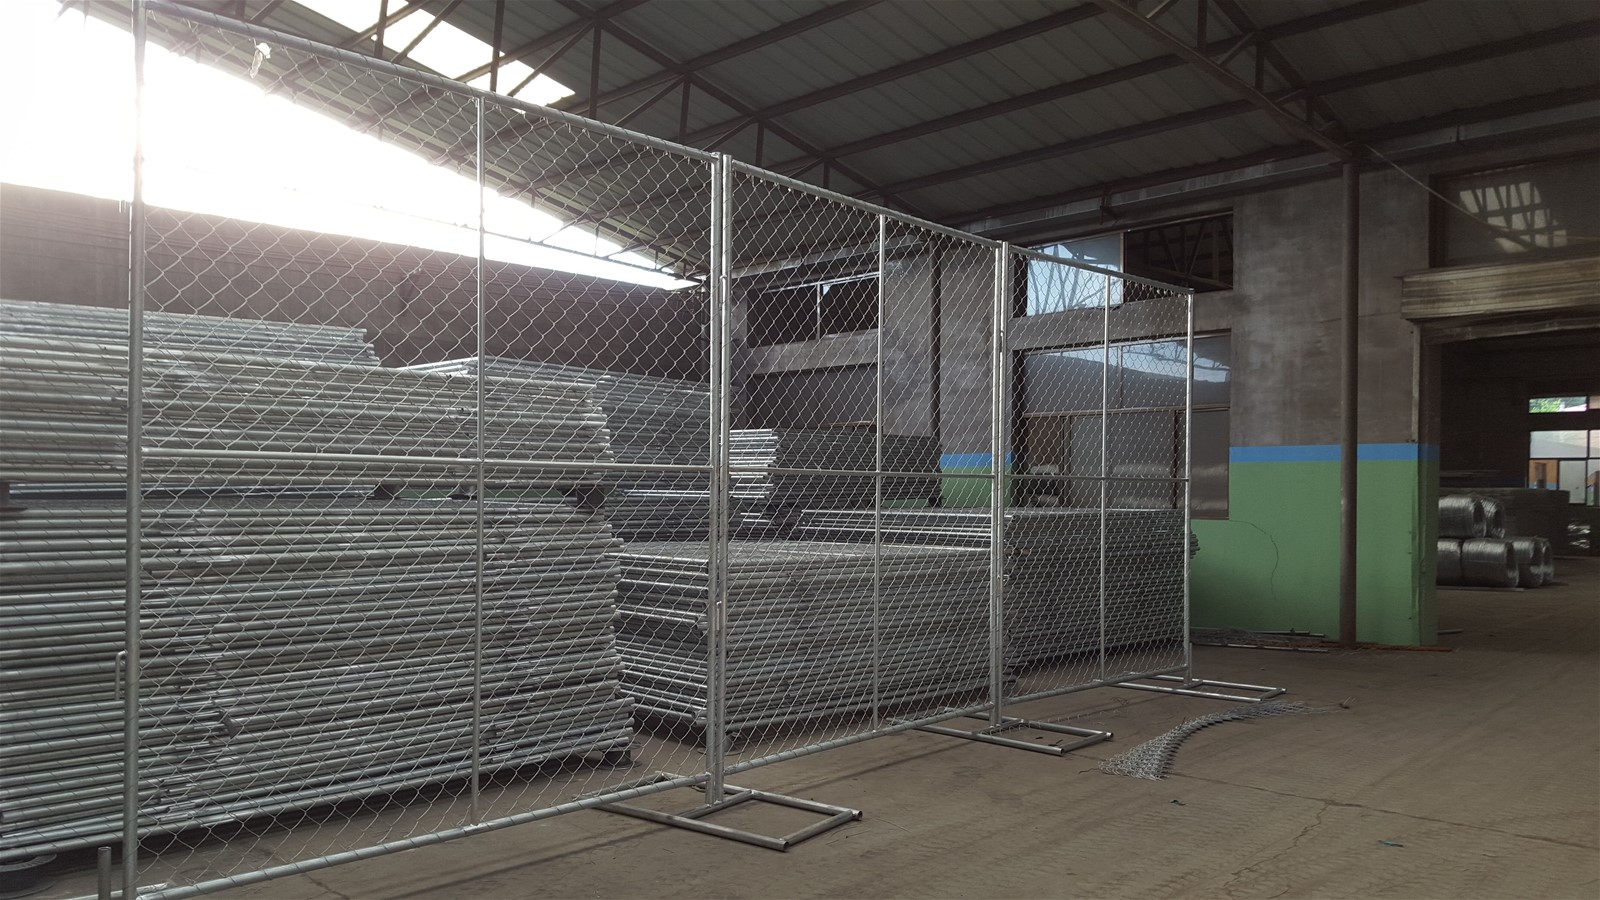 6x12ft Galvanized Temporary Industrial Security Chain Link